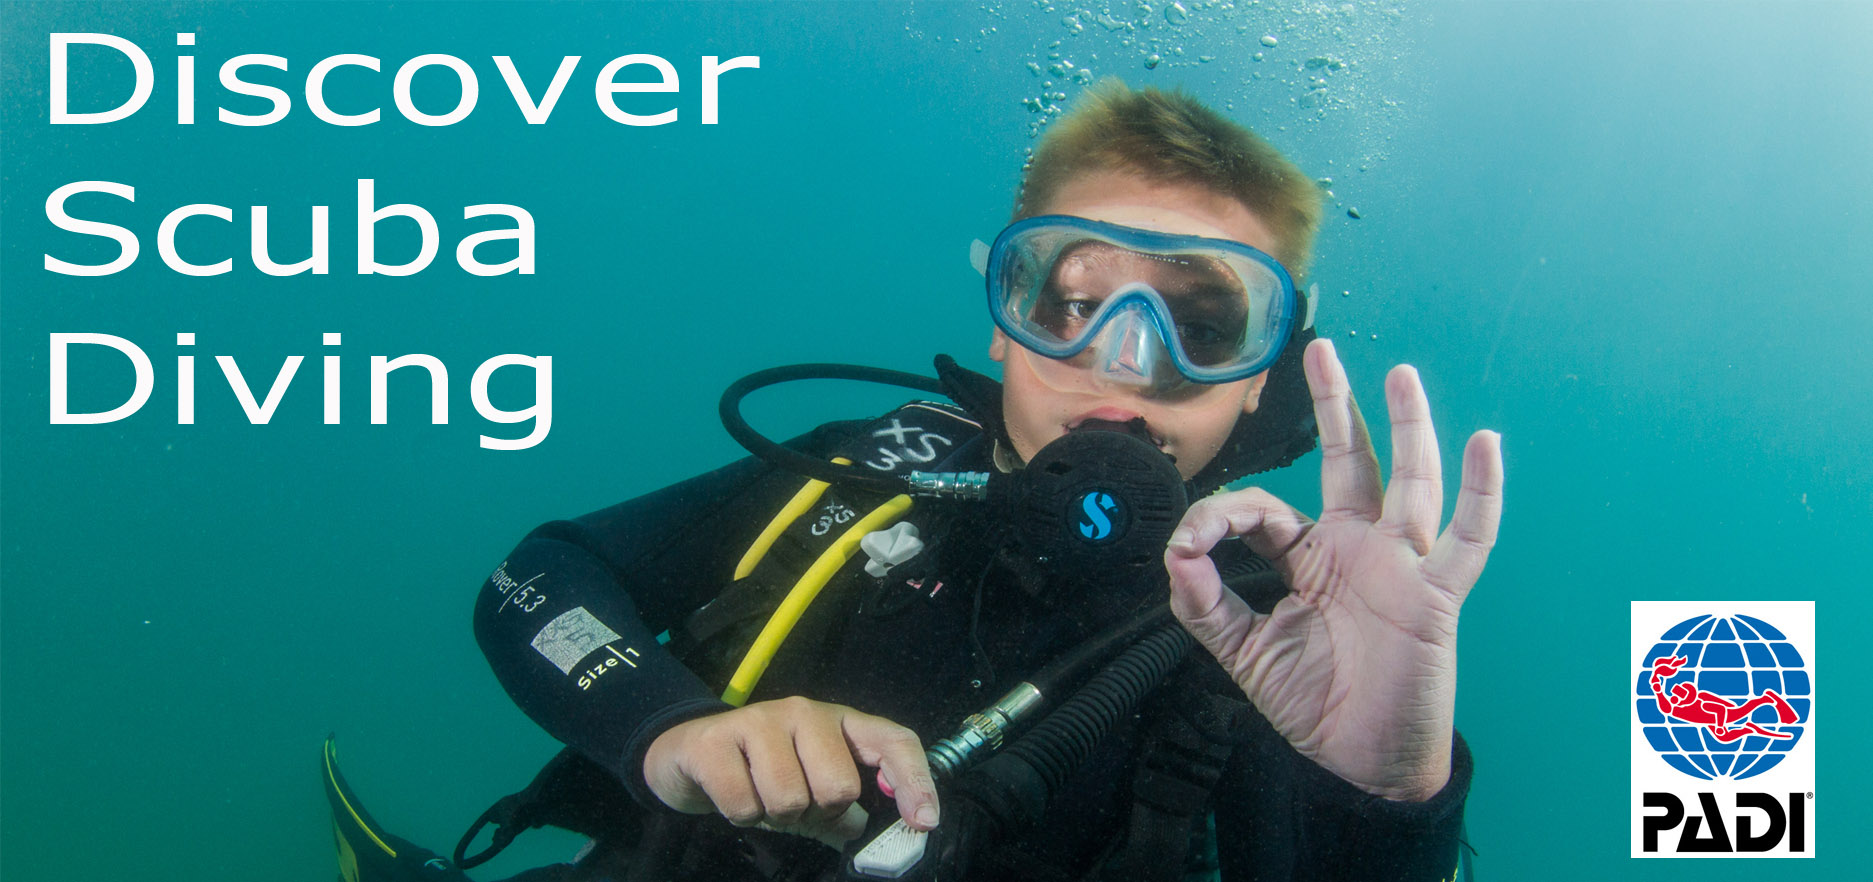 PADI - Search and Recovery